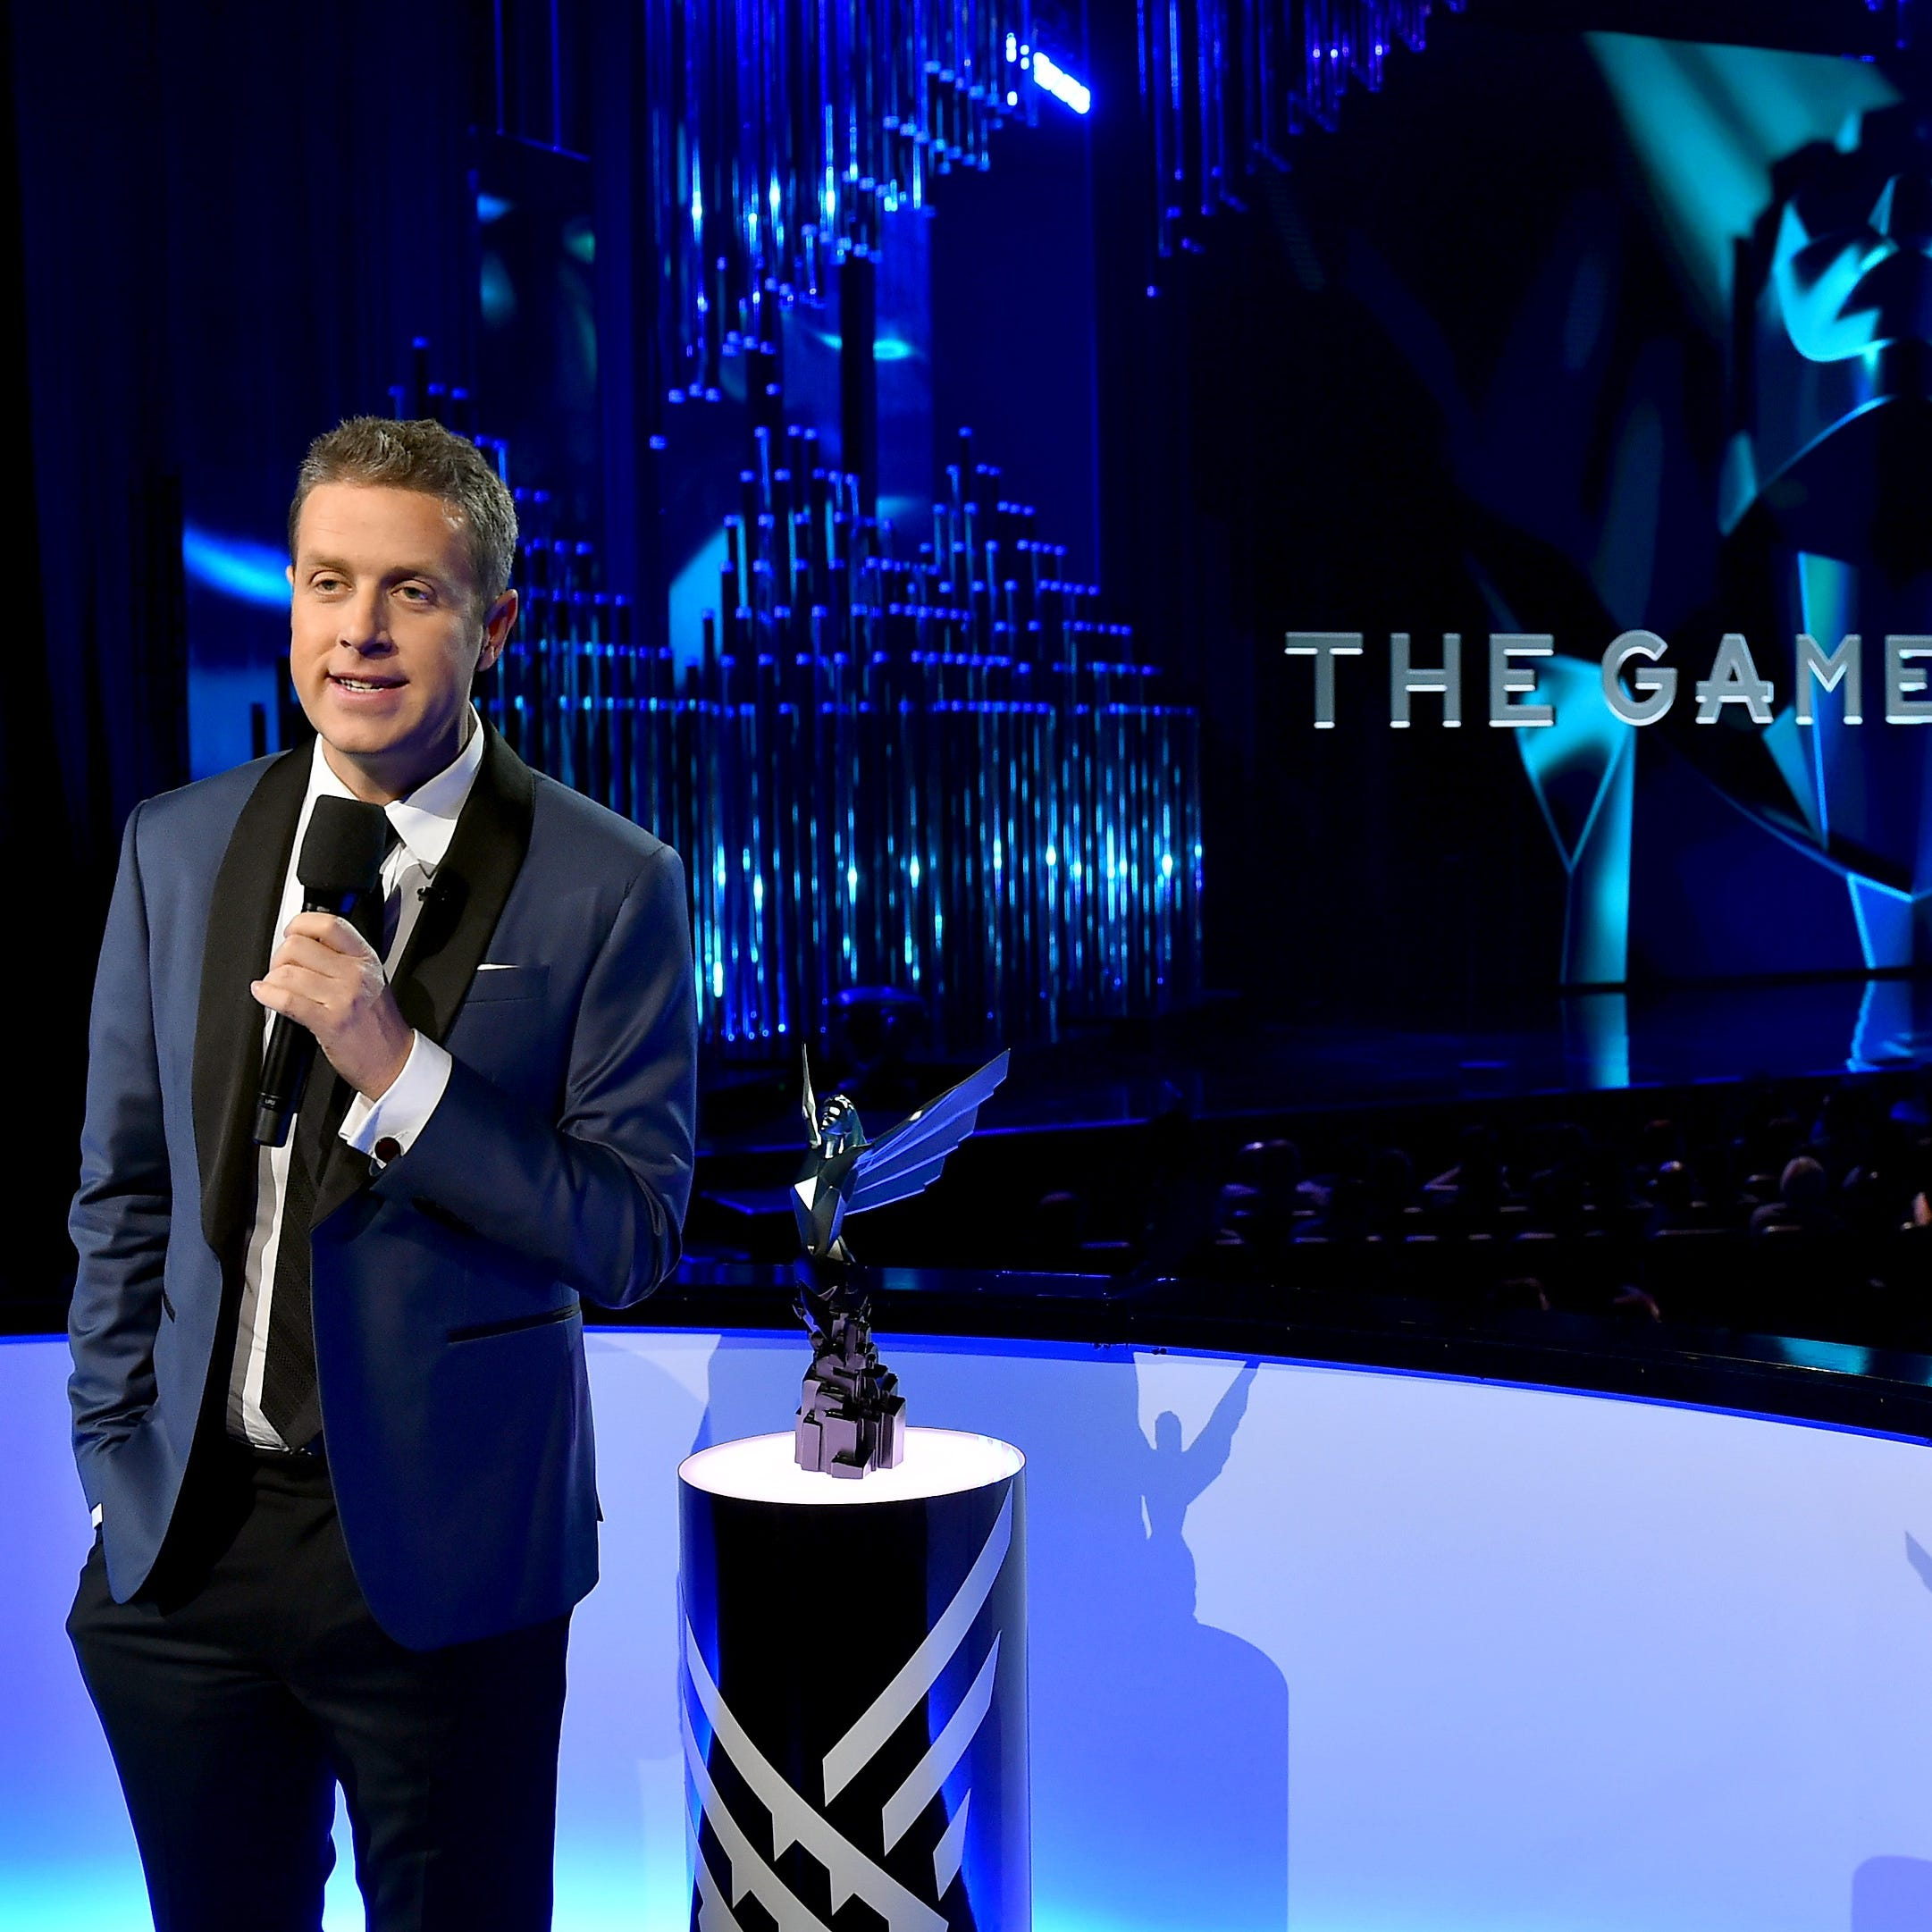 Host Geoff Keighley onstage at the 2017 Game Awards at the Microsoft Theater on December 7, 2017 in Los Angeles, California.